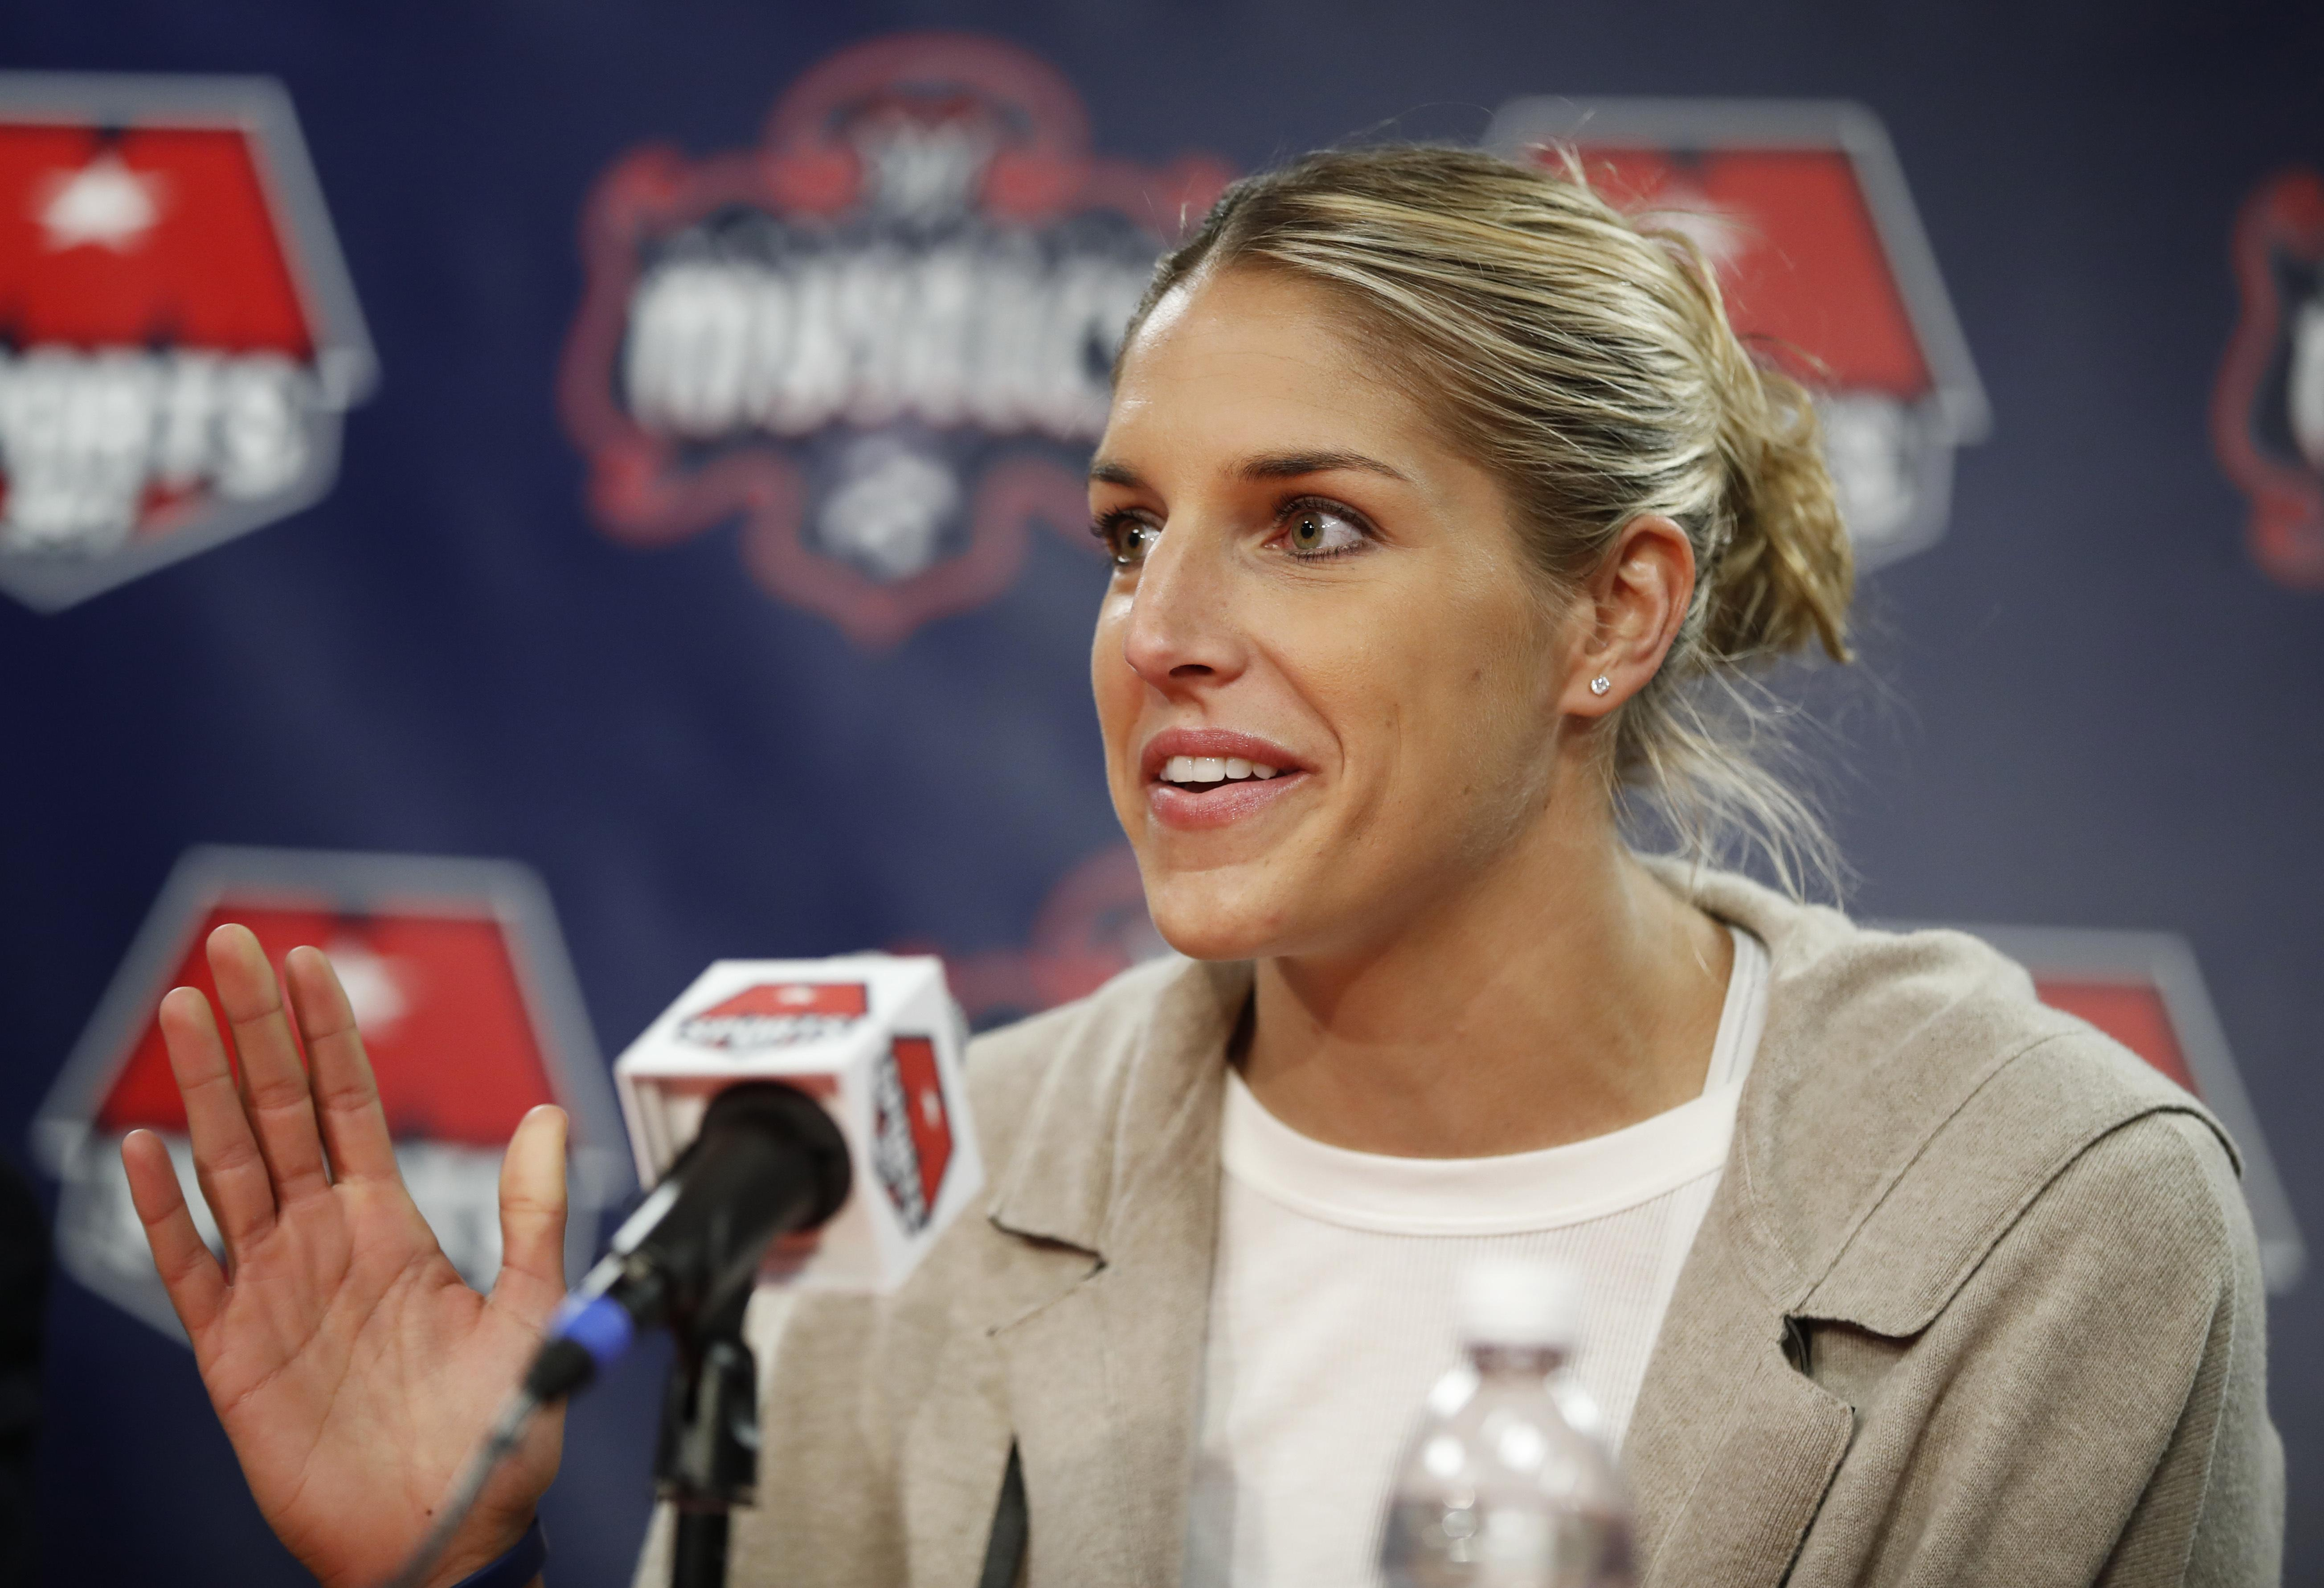 Elena Delle Donne's 29 points, 11 rebounds lead Mystics to latest win